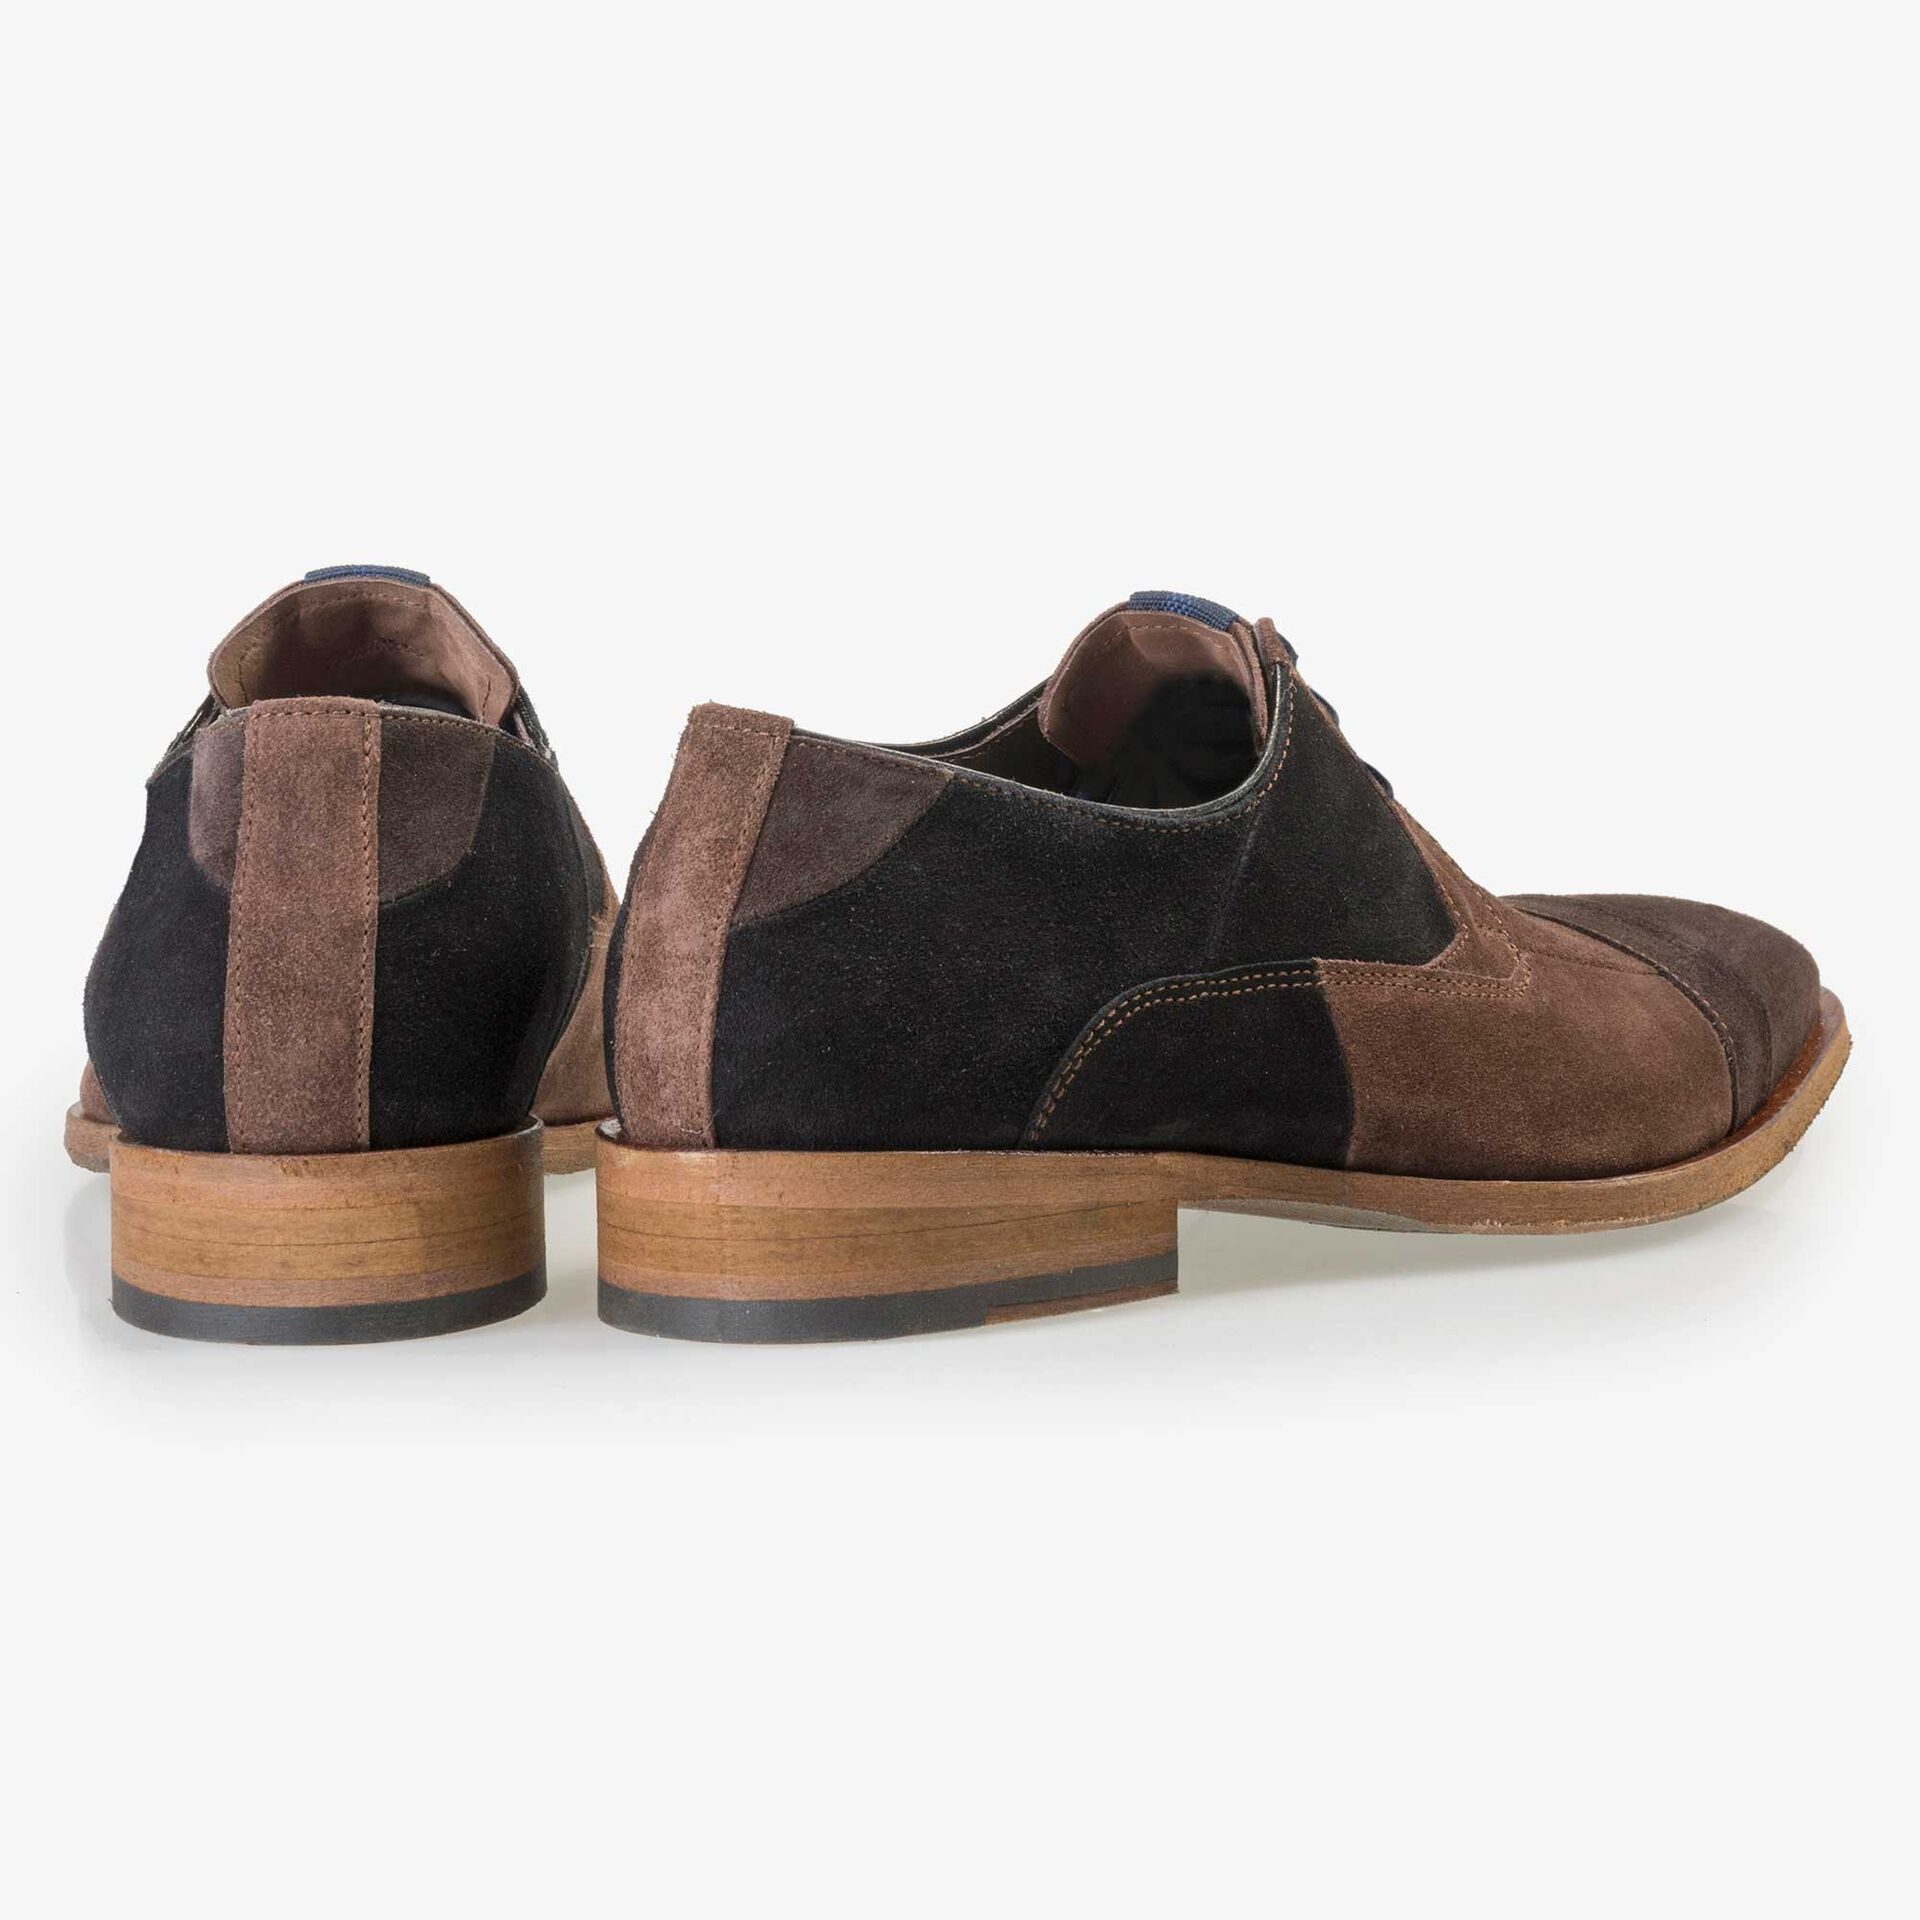 Floris van Bommel brown suede leather patchwork lace shoe